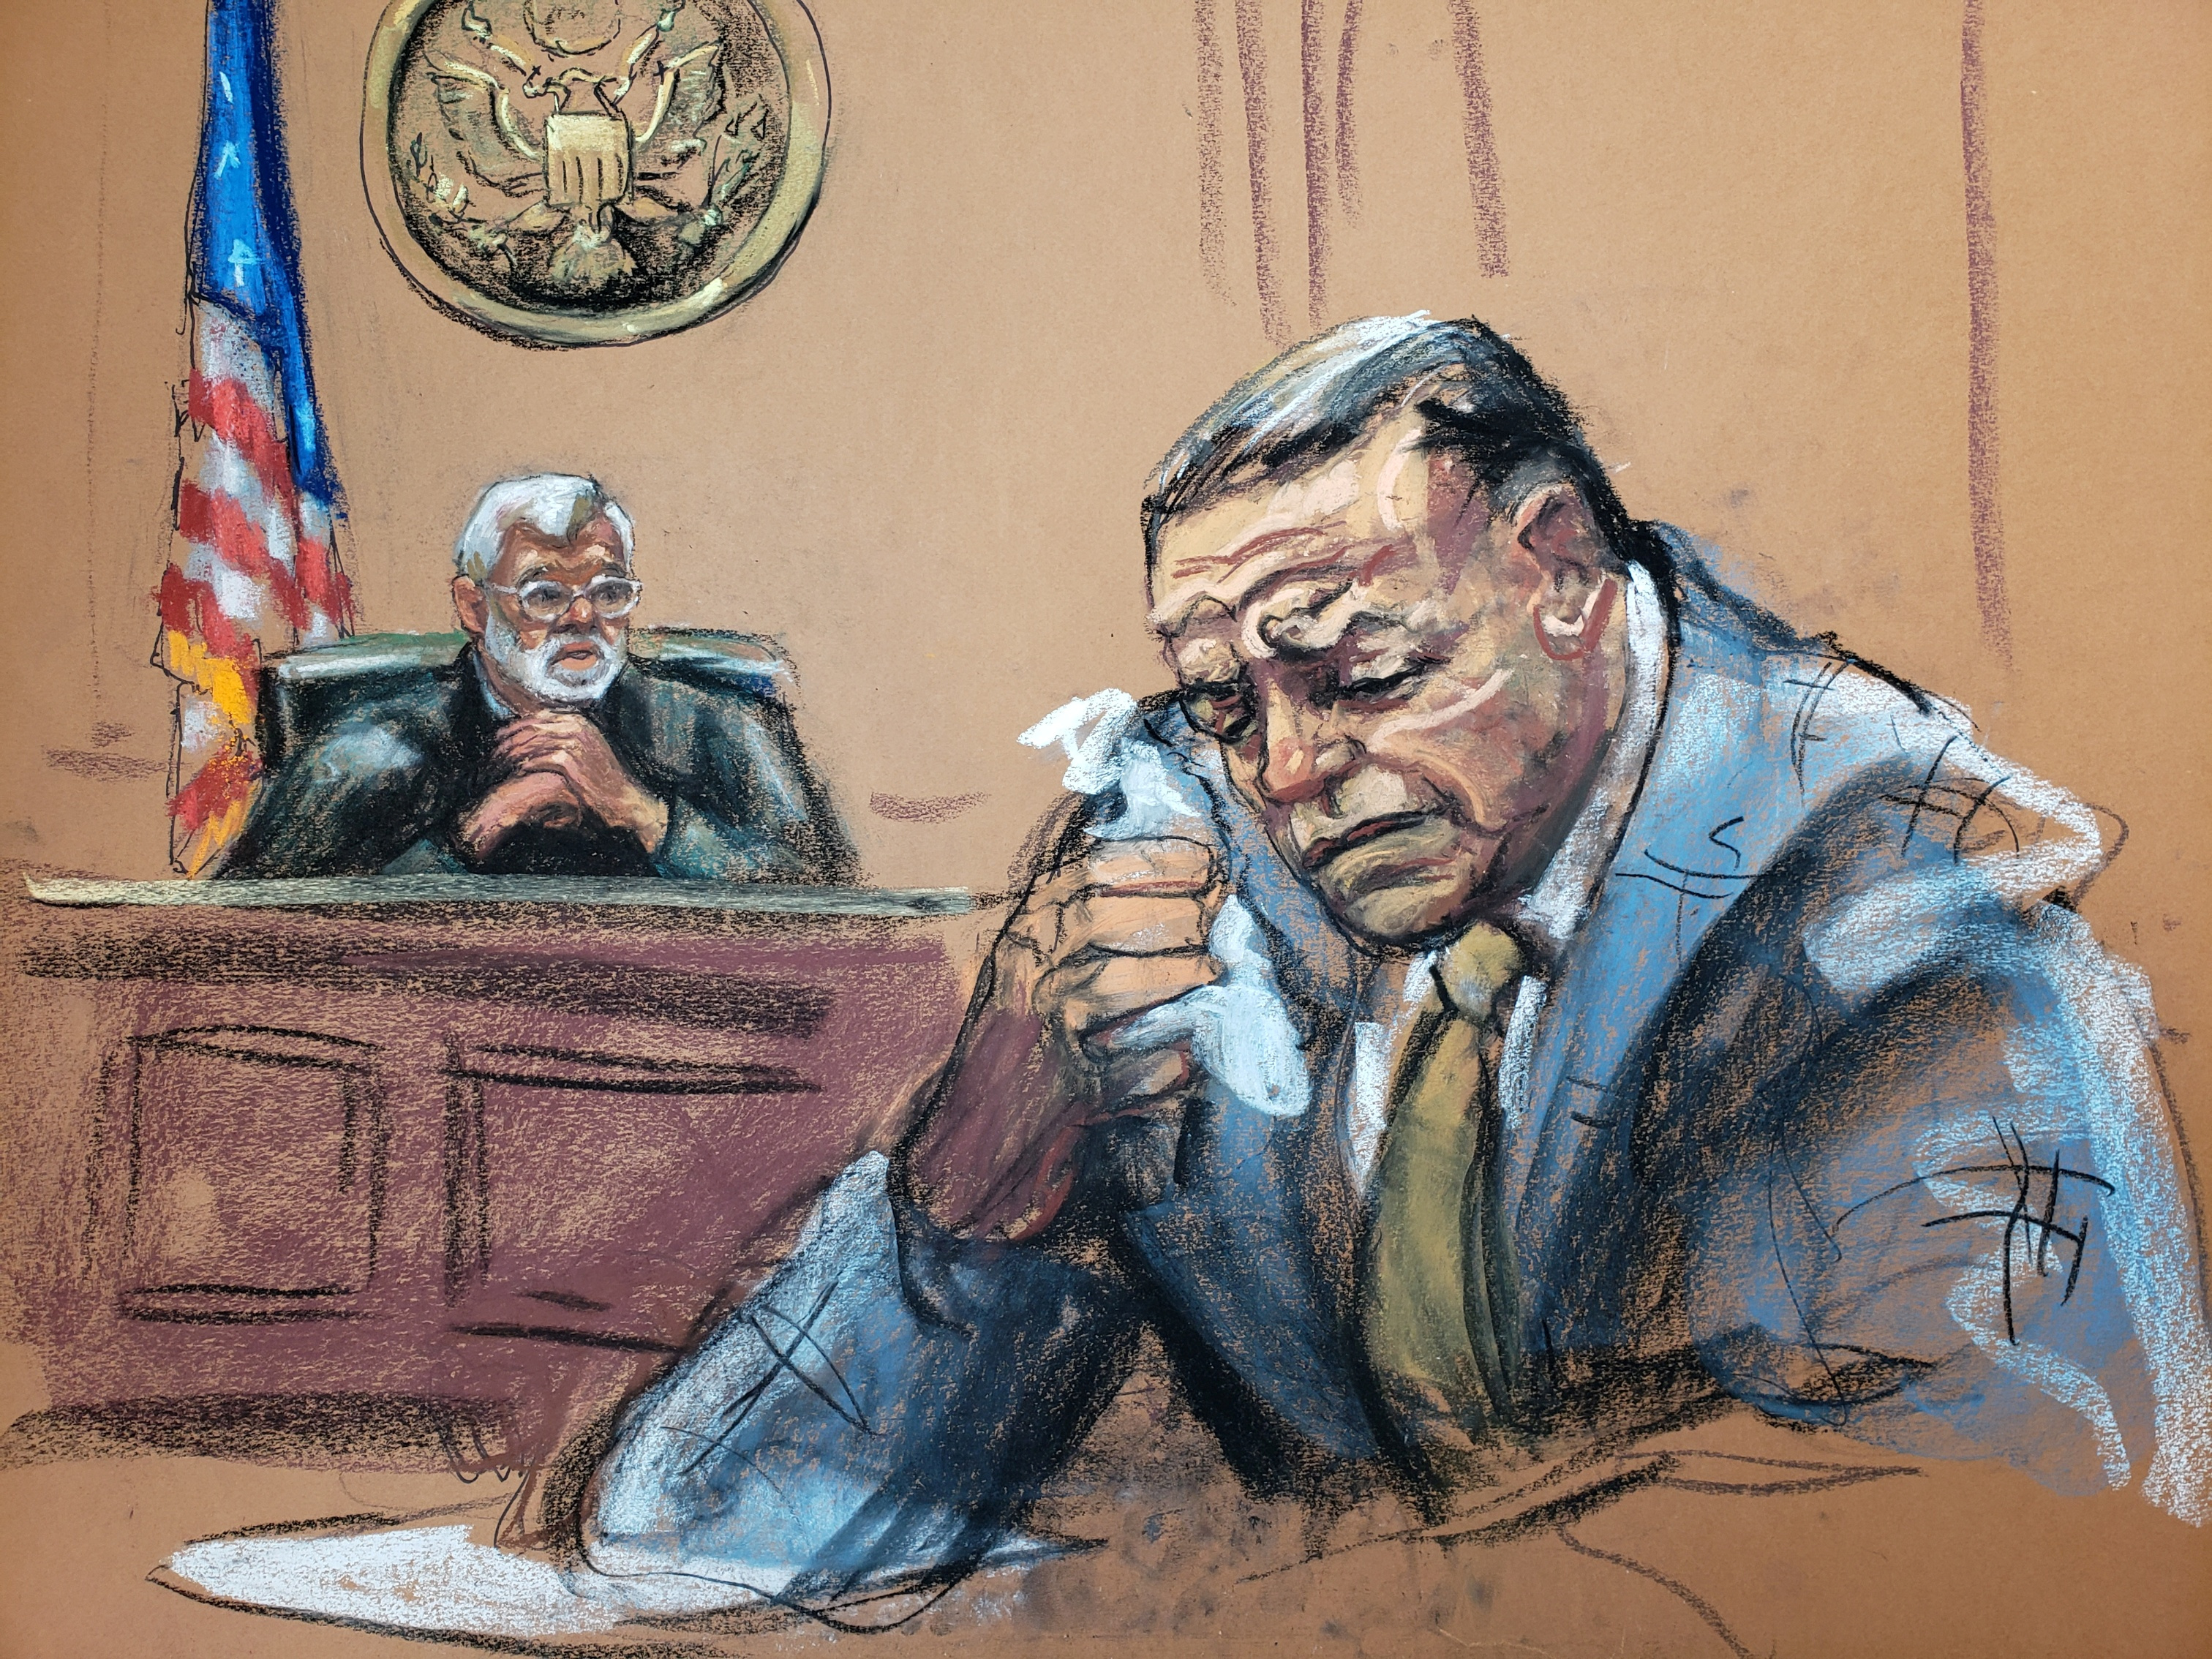 Cesar Sayoc, 57, who pleaded guilty in March to using weapons of mass destruction and other crimes, weeps during sentensing, as U.S. District Judge Jed Rakoff read the sentence, in this courtroom sketch at the federal court in Manhattan, New York, U.S., August 5, 2019. REUTERS/Jane Rosenberg